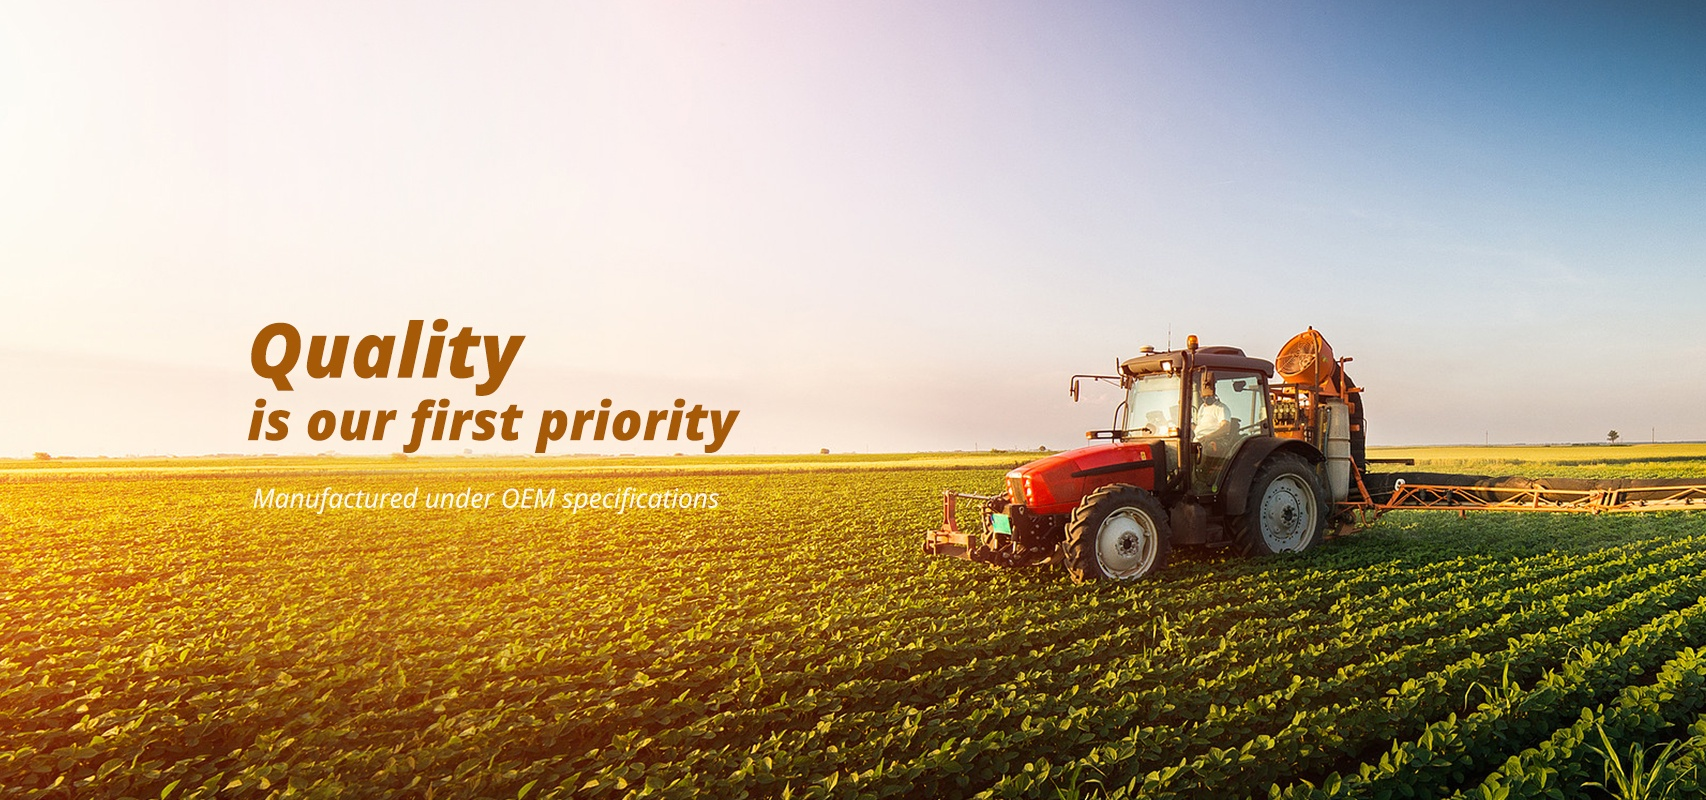 Quality is our first priority